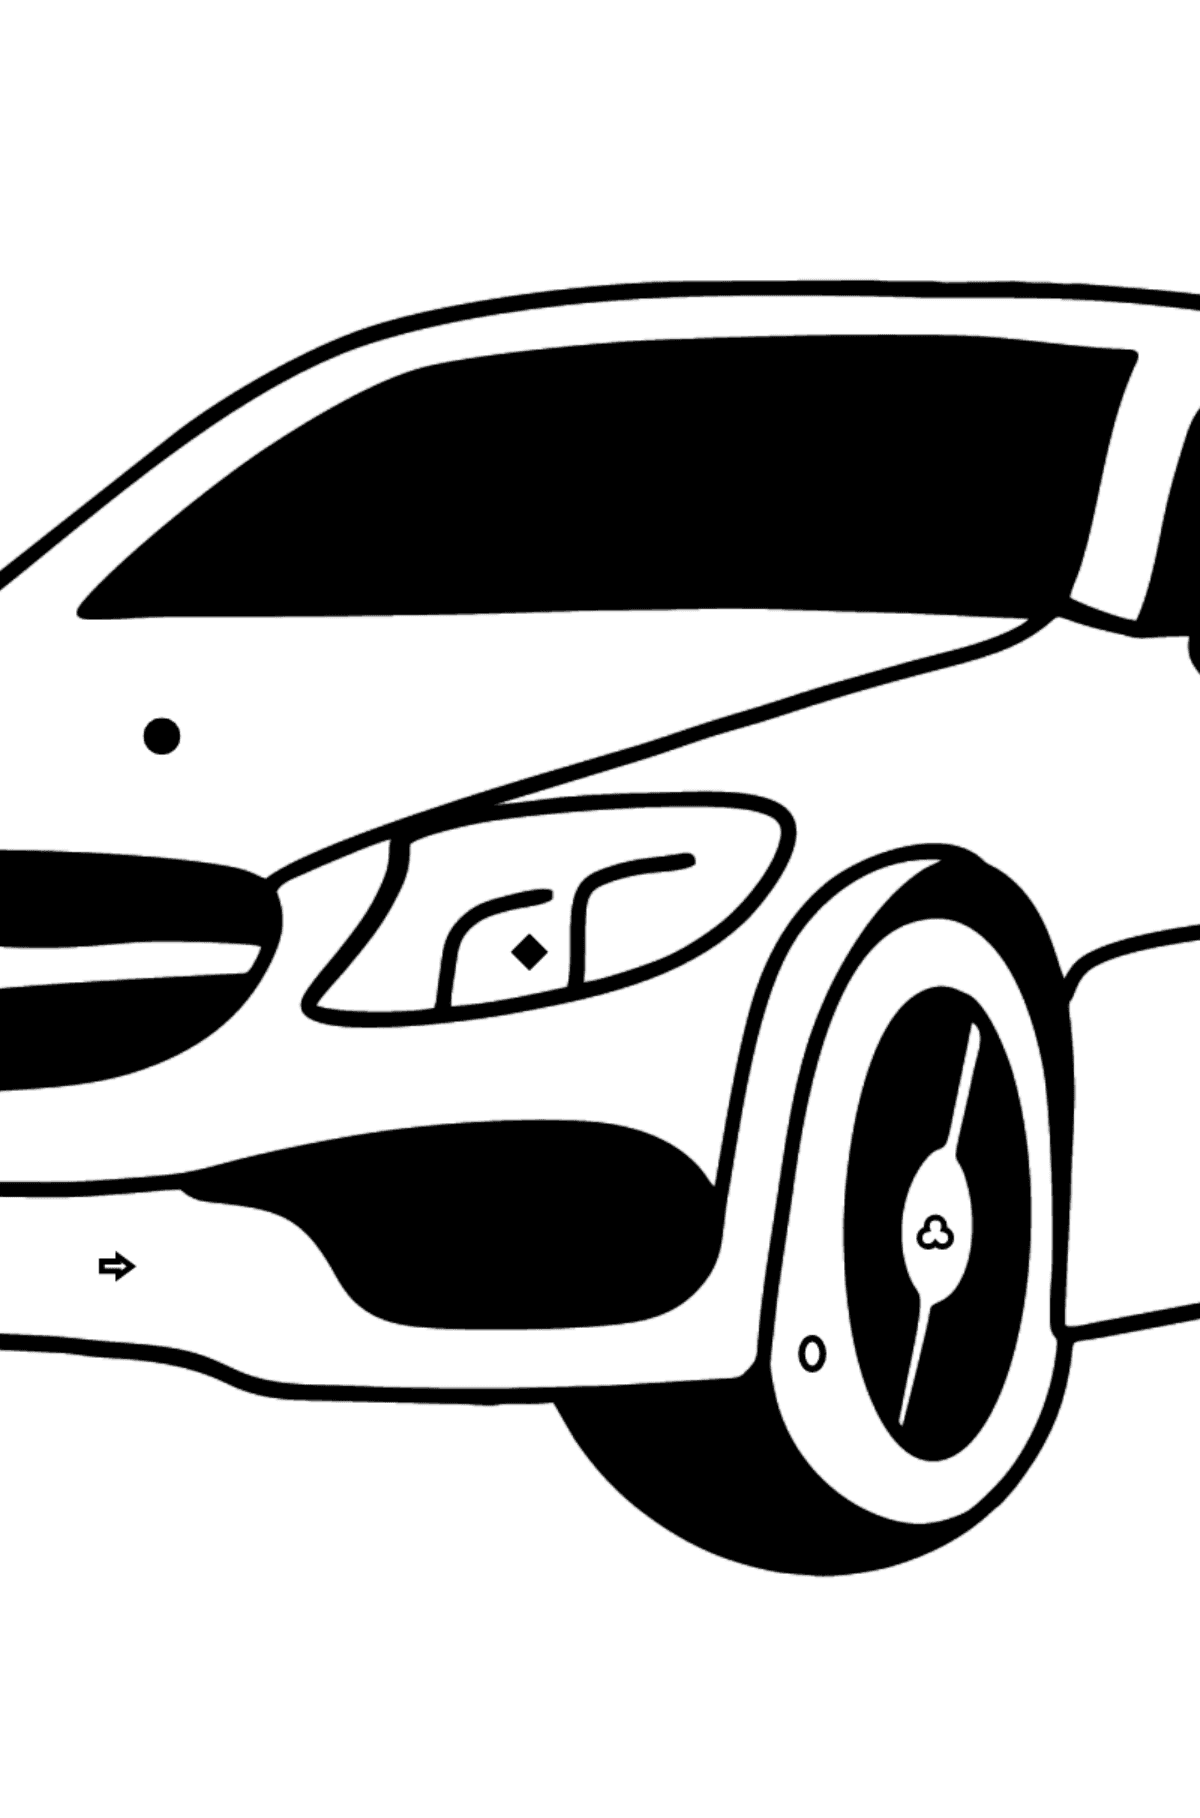 Mercedes C63 AMG car coloring page - Coloring by Symbols and Geometric Shapes for Kids